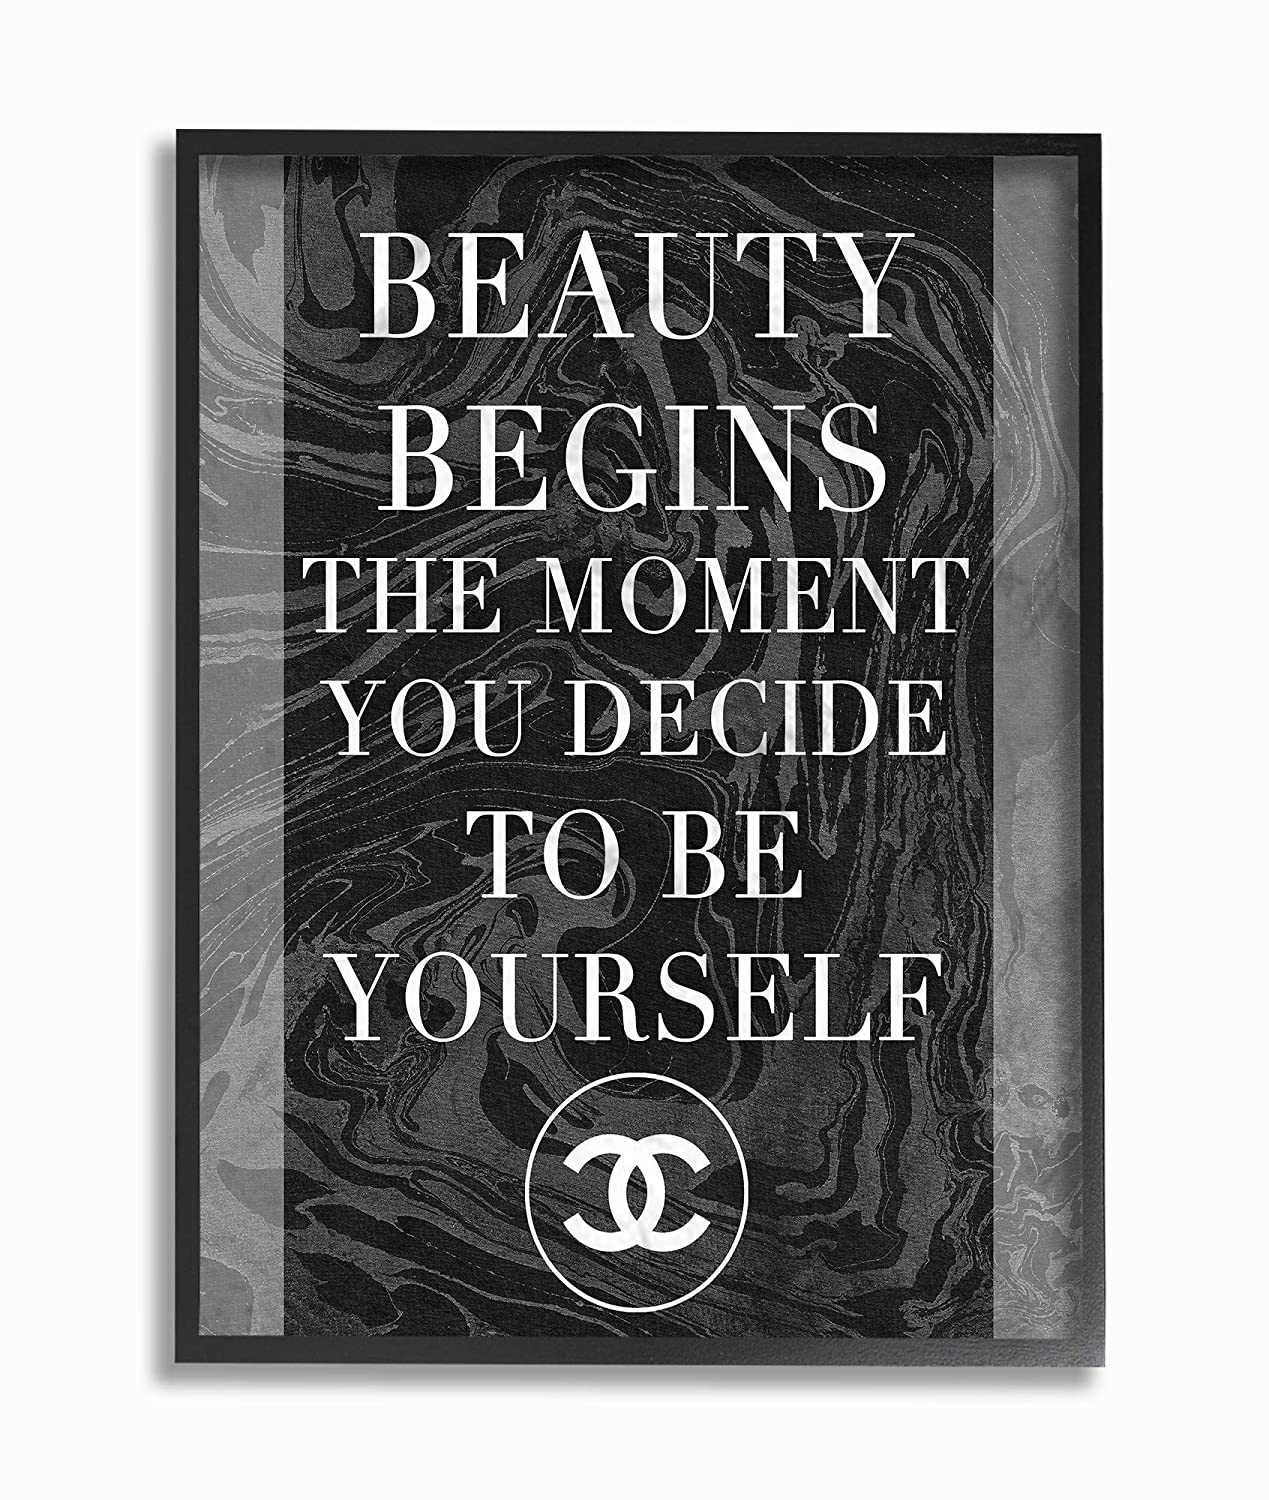 Multi-Color The Stupell Home Decor Beauty Begins Once You Decide to Be Yourself Black Marble Typography Framed Giclee Texturized Art 11 x 14